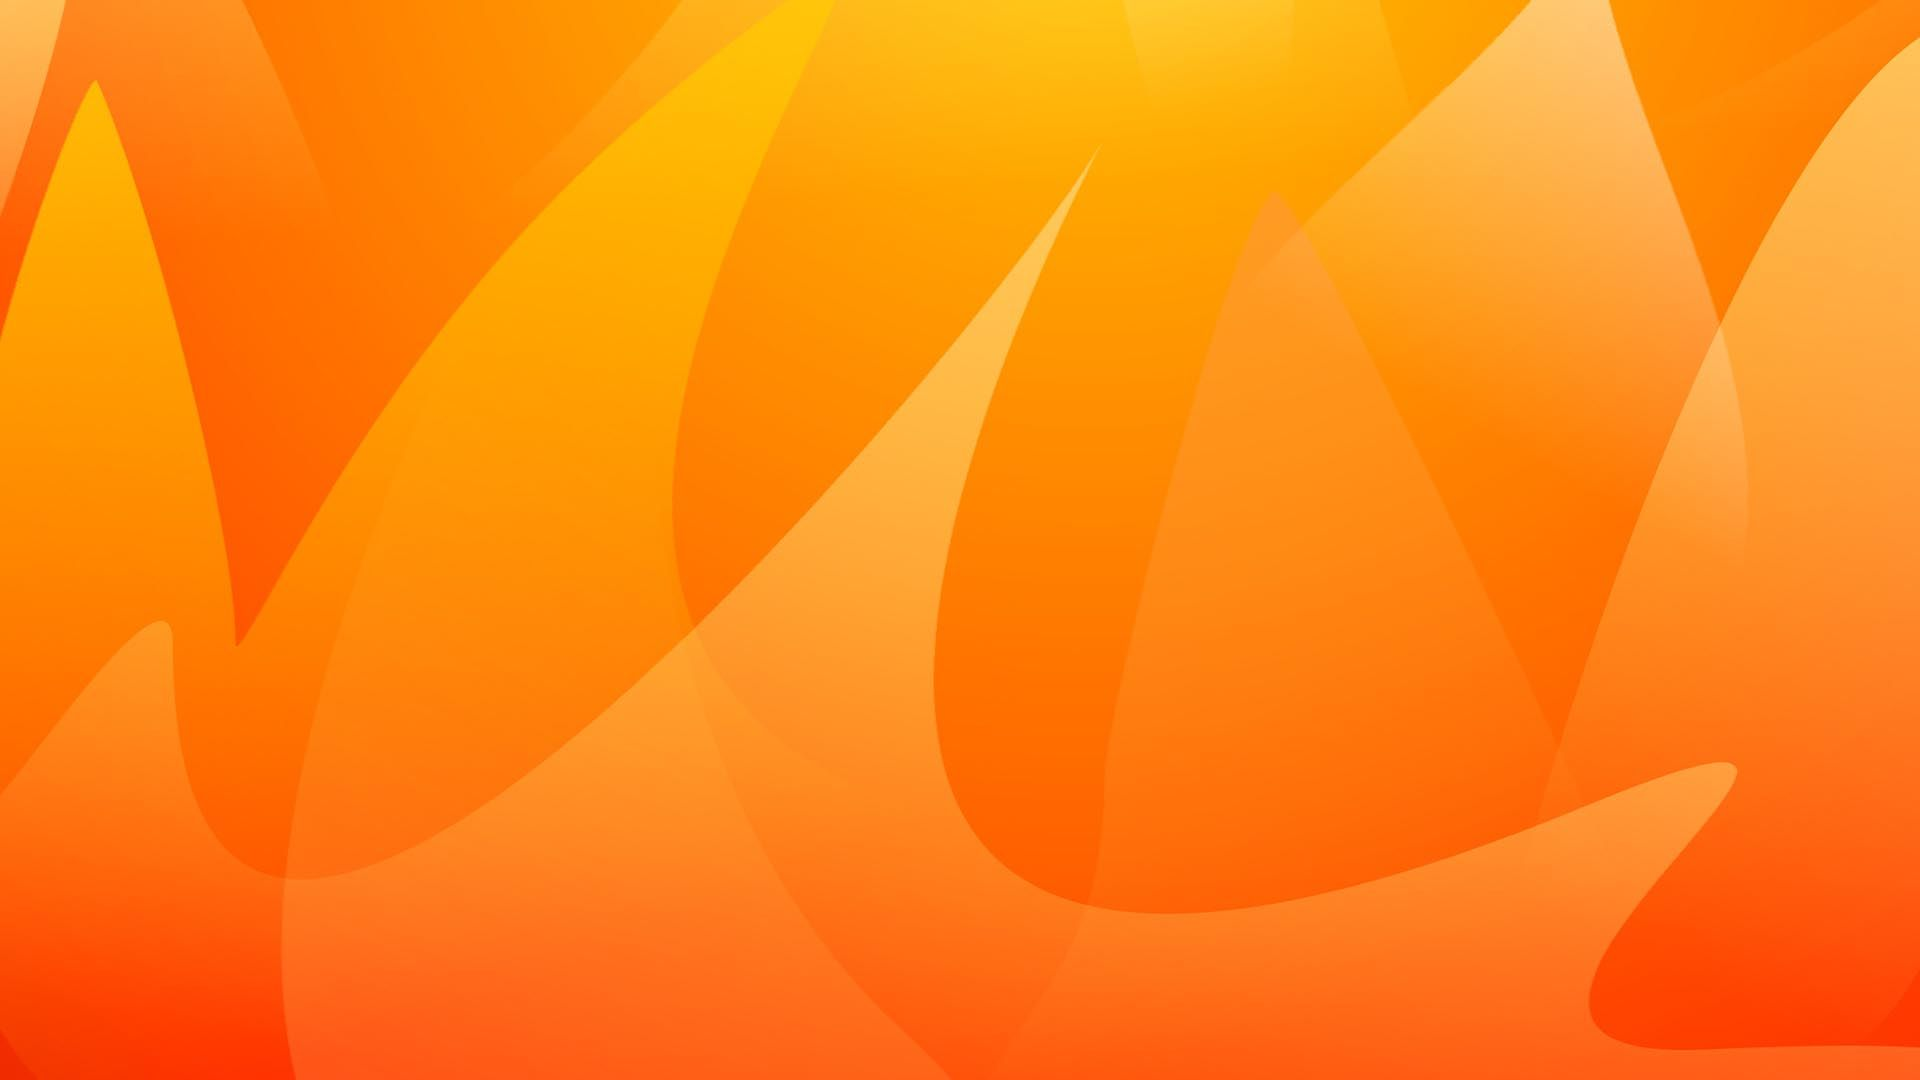 Orange And White HD Wallpaper